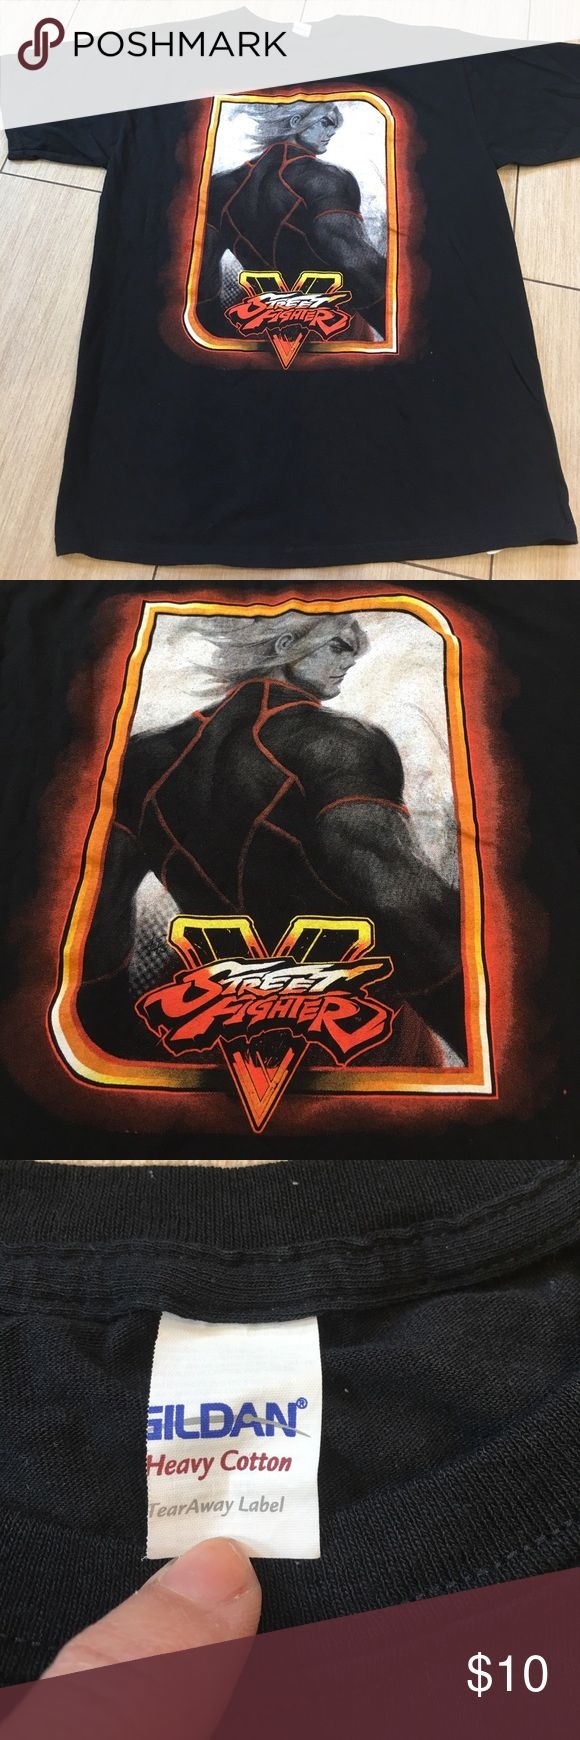 Street Fighter T-Shirt Exclusive (Youth boy size) Street Fighter T-Shirt Exclusive Its another one of those Loot Crate or Nerd Block exclusive tops. I included measurements because tear away tag has been torn away. Lol please refer to measurements & other like shirts in my closet as there are many many...lol to get correct sizing Shirts & Tops Tees - Short Sleeve